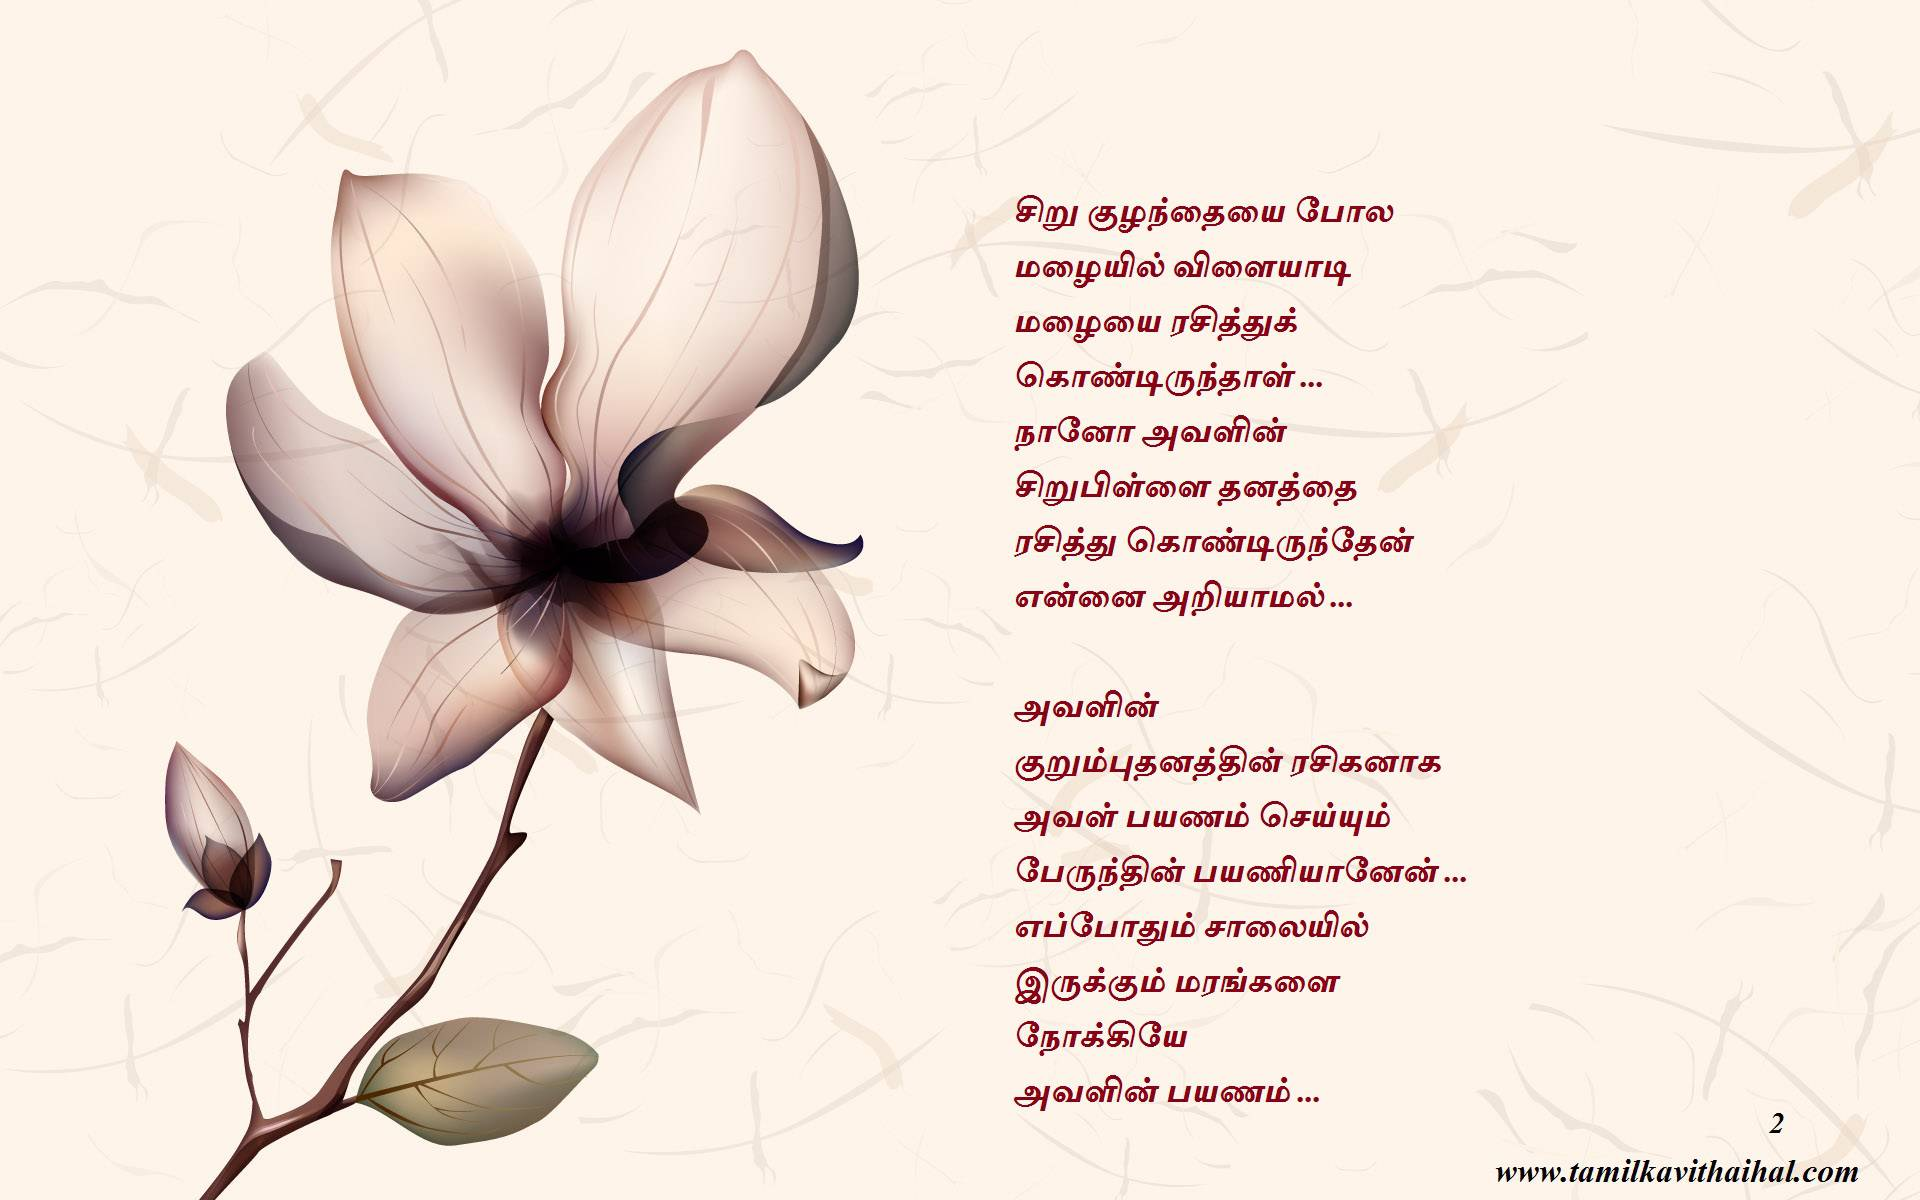 Tamil kadhal kavithai bus payanam kavithaigal thodar meera new latest tamil poems love story 2